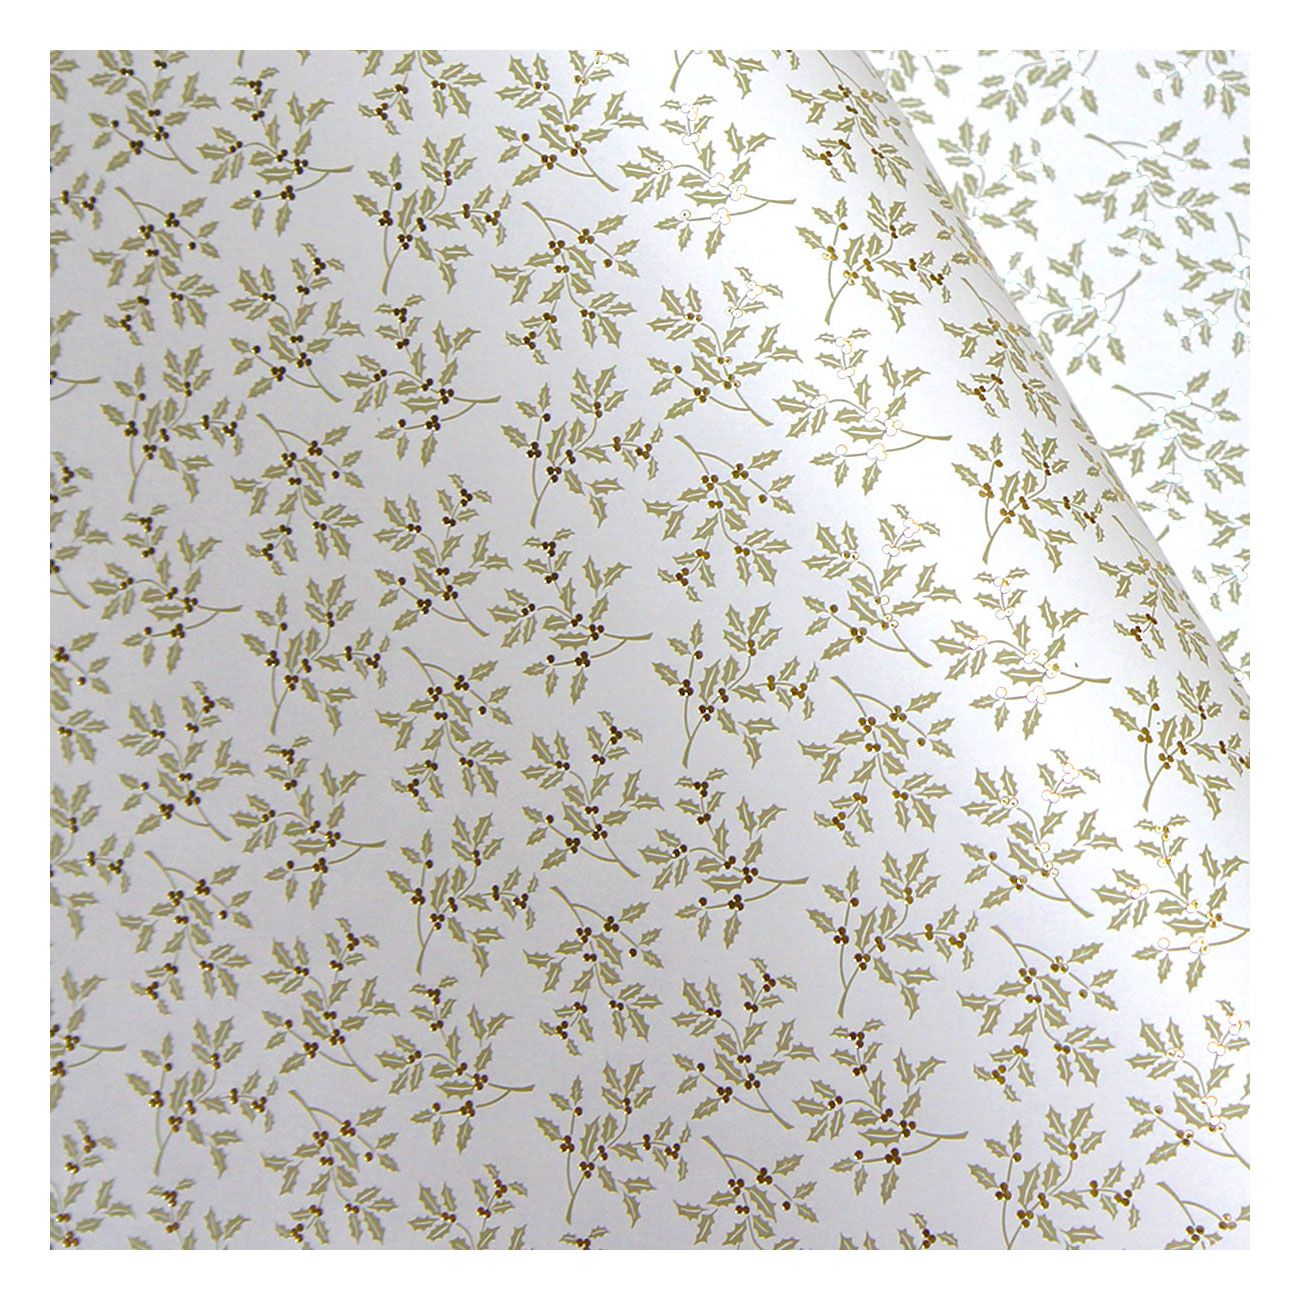 "<p>This holiday plant doesn't scream ""Christmas!"" when done in an elegant cream and gold color palette. (Holly Bisque Letterpress Foil, $5.50 per sheet; <a href=""http://www.luxepaperie.com/tassottipaper3.html"" data-tracking-id=""recirc-text-link"" target=""_blank"">luxepaperie.com</a>)</p>"